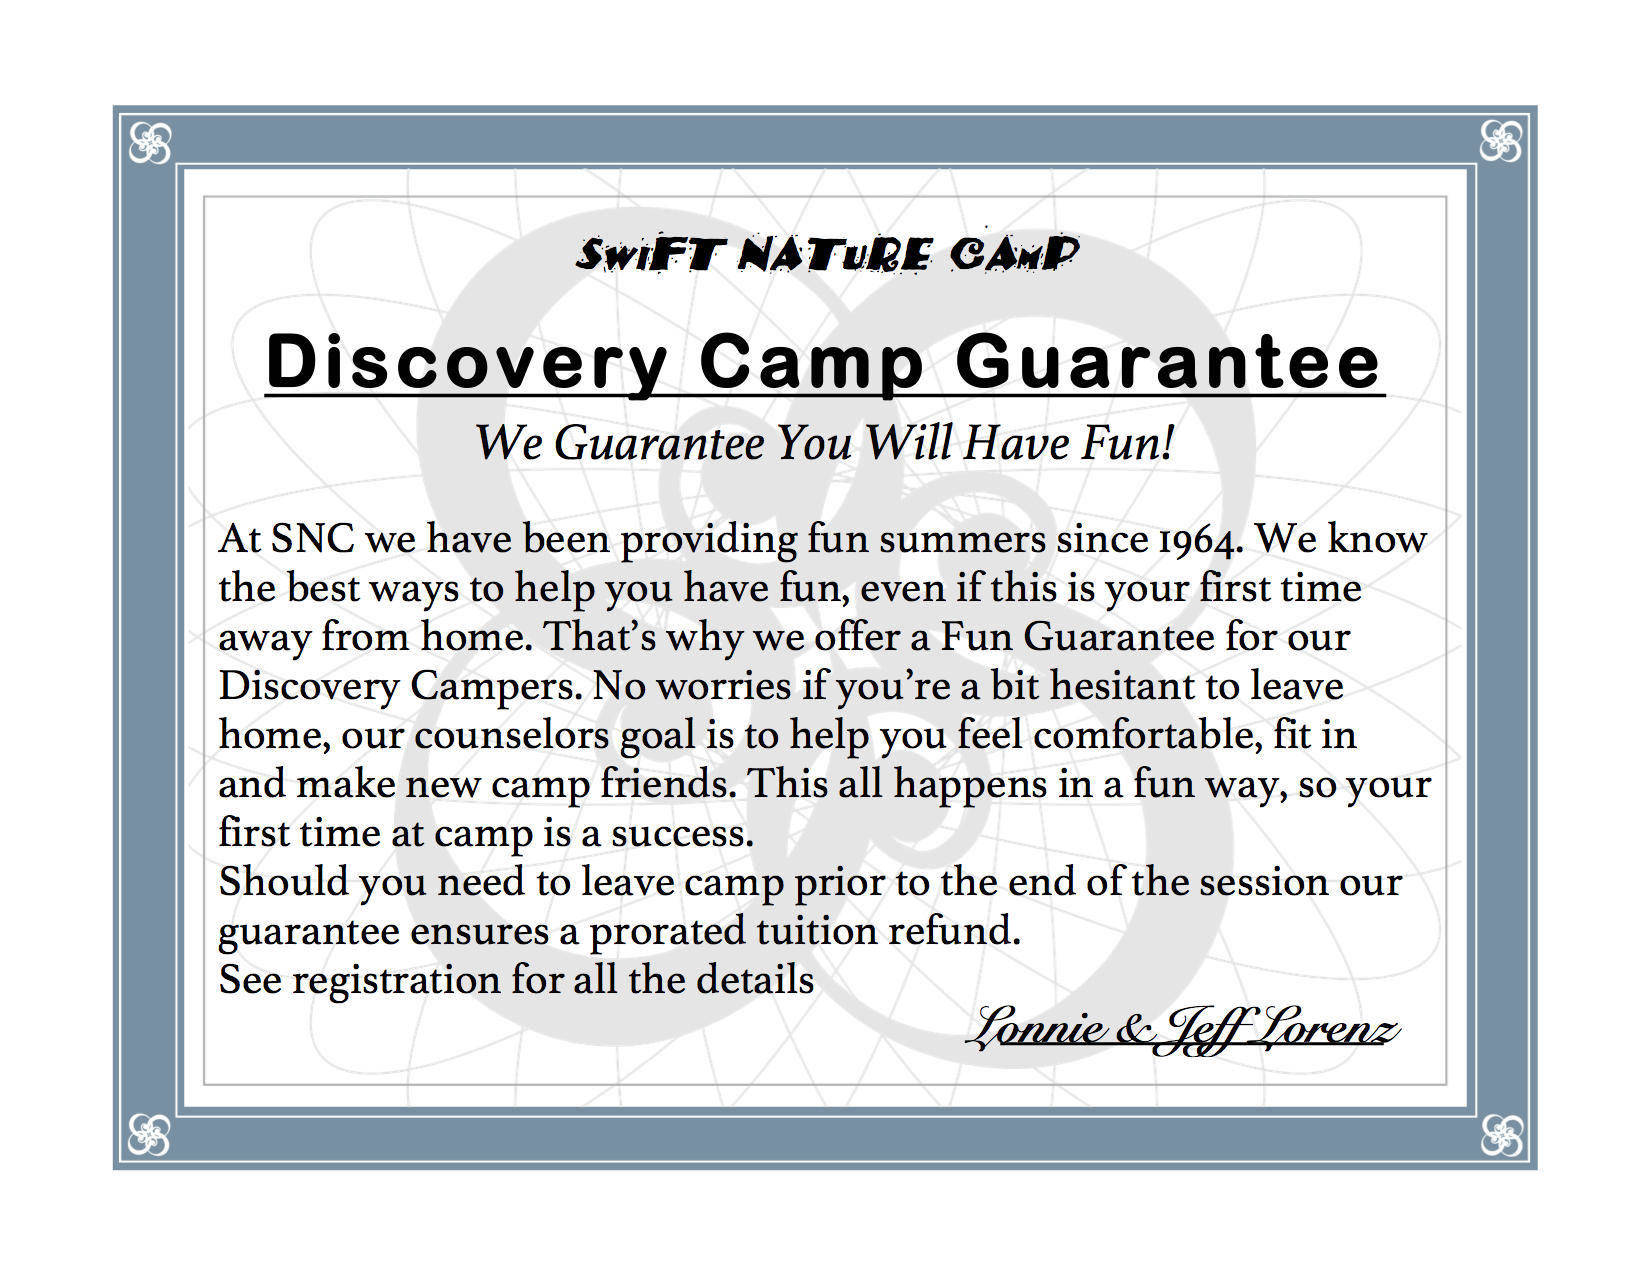 Summer Camp Gurantee